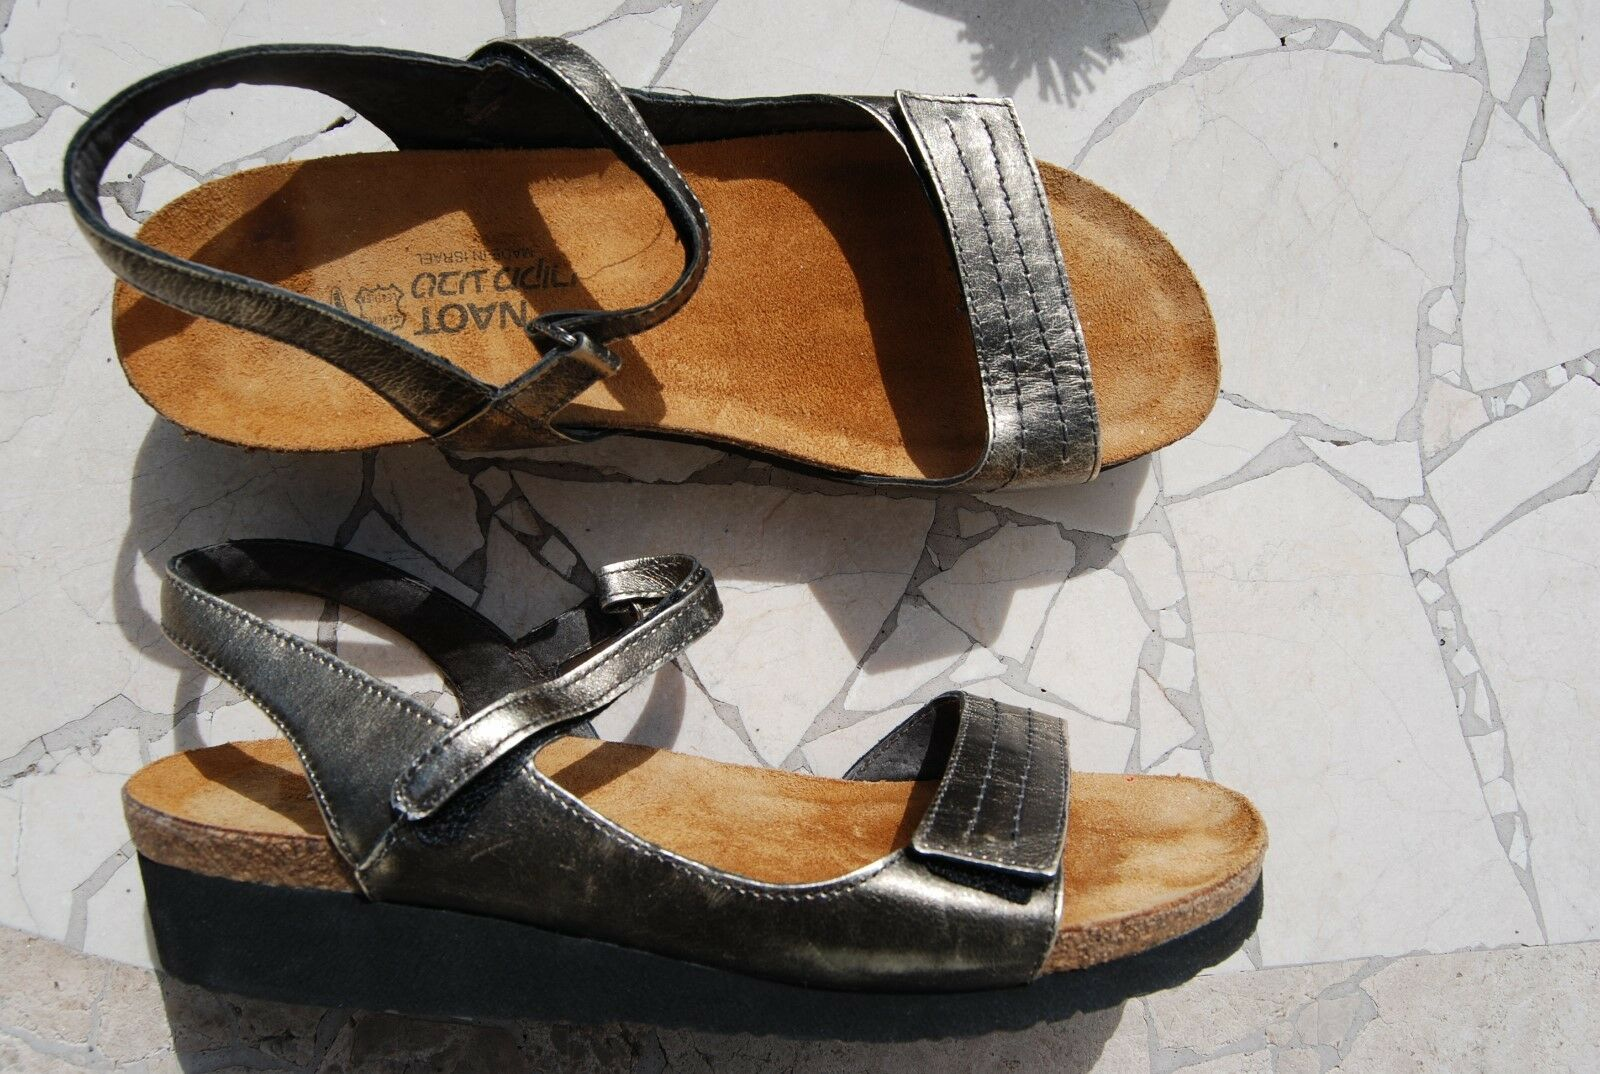 Dark Pewter Slingback Leather NAOT Open Toe Strappy Slingback Pewter Sandals US 11 b26c49